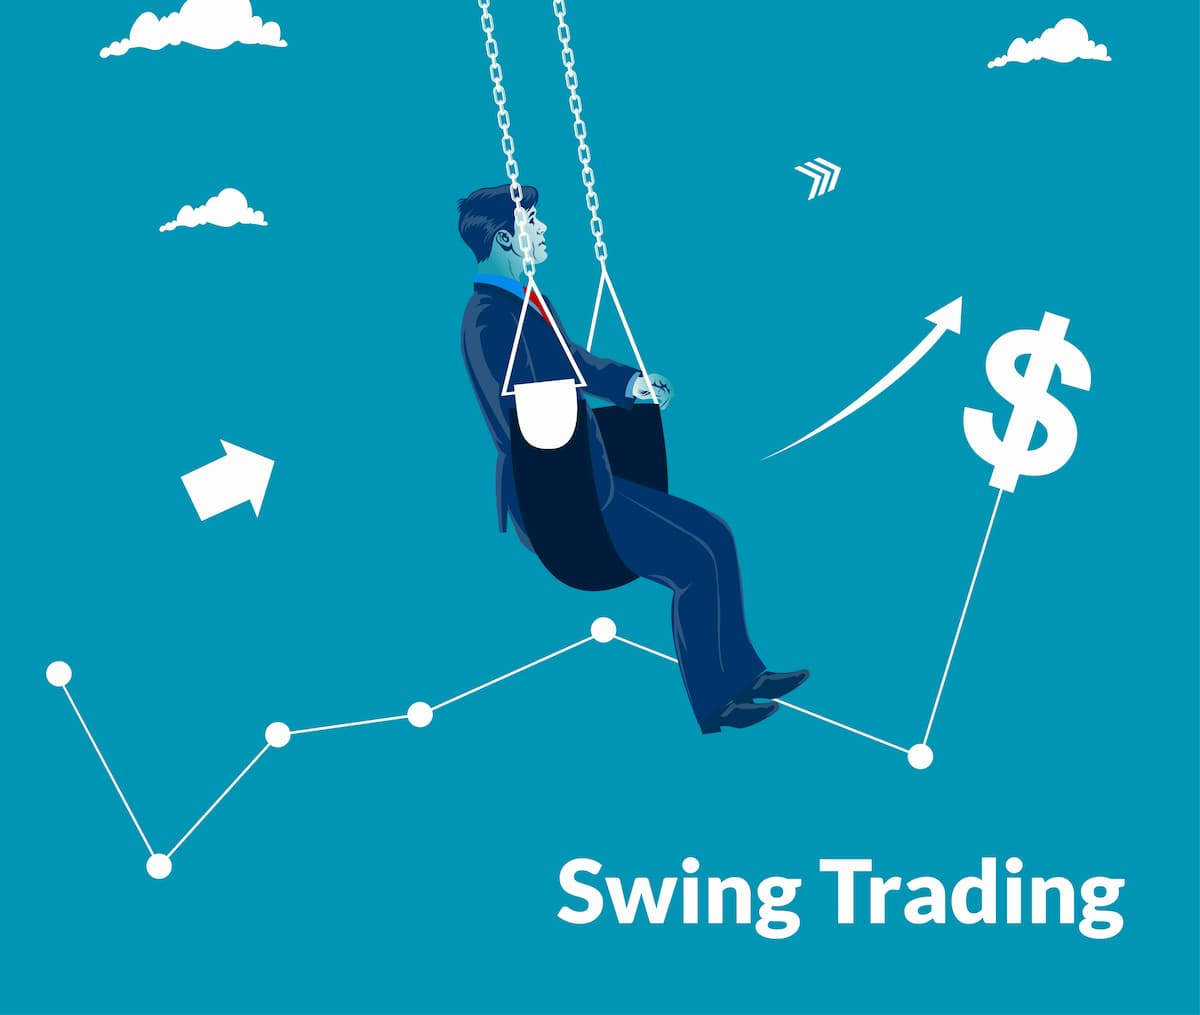 Swing trading strategies: how swing trading works and how to apply it | Liteforex